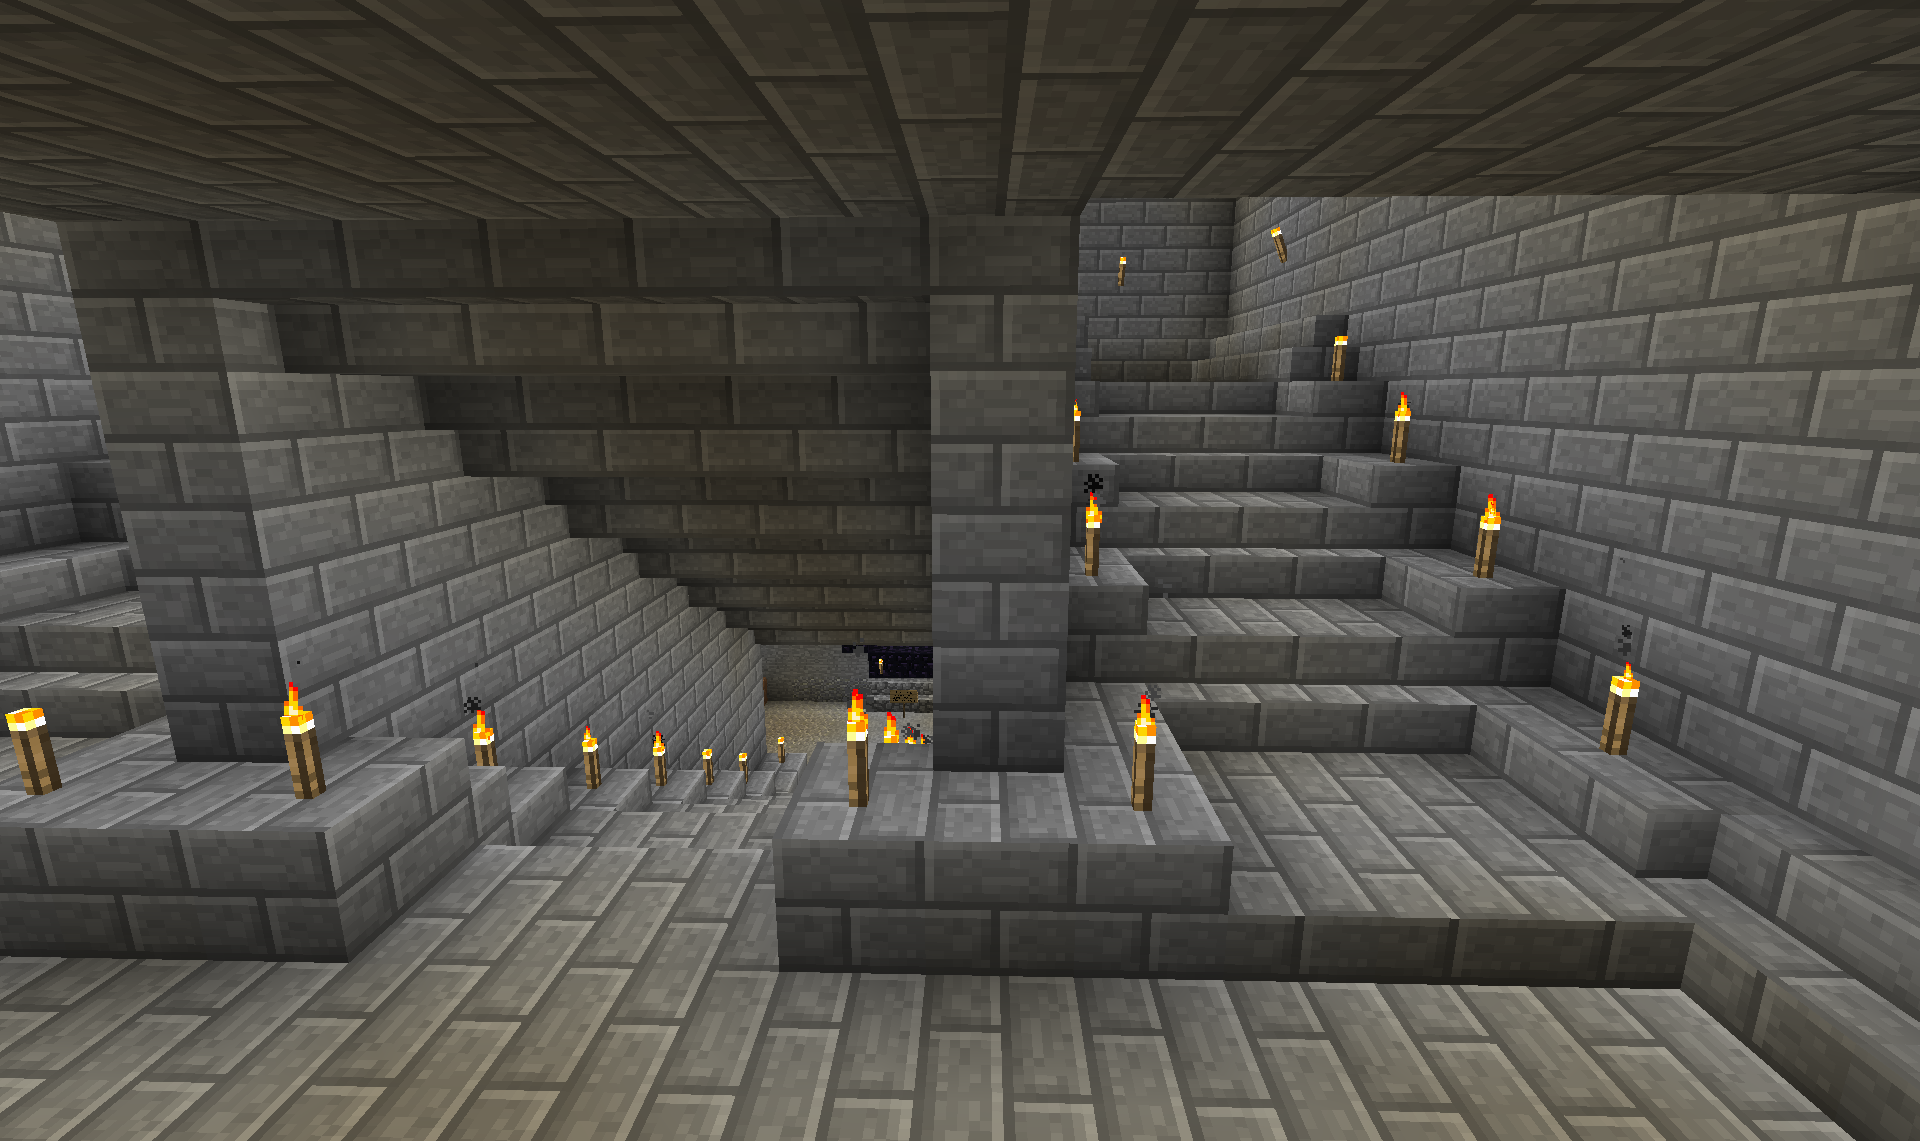 The stairs converge again and then go down into the room where my nether portal will reside. I'm really liking how the stairs turned out.